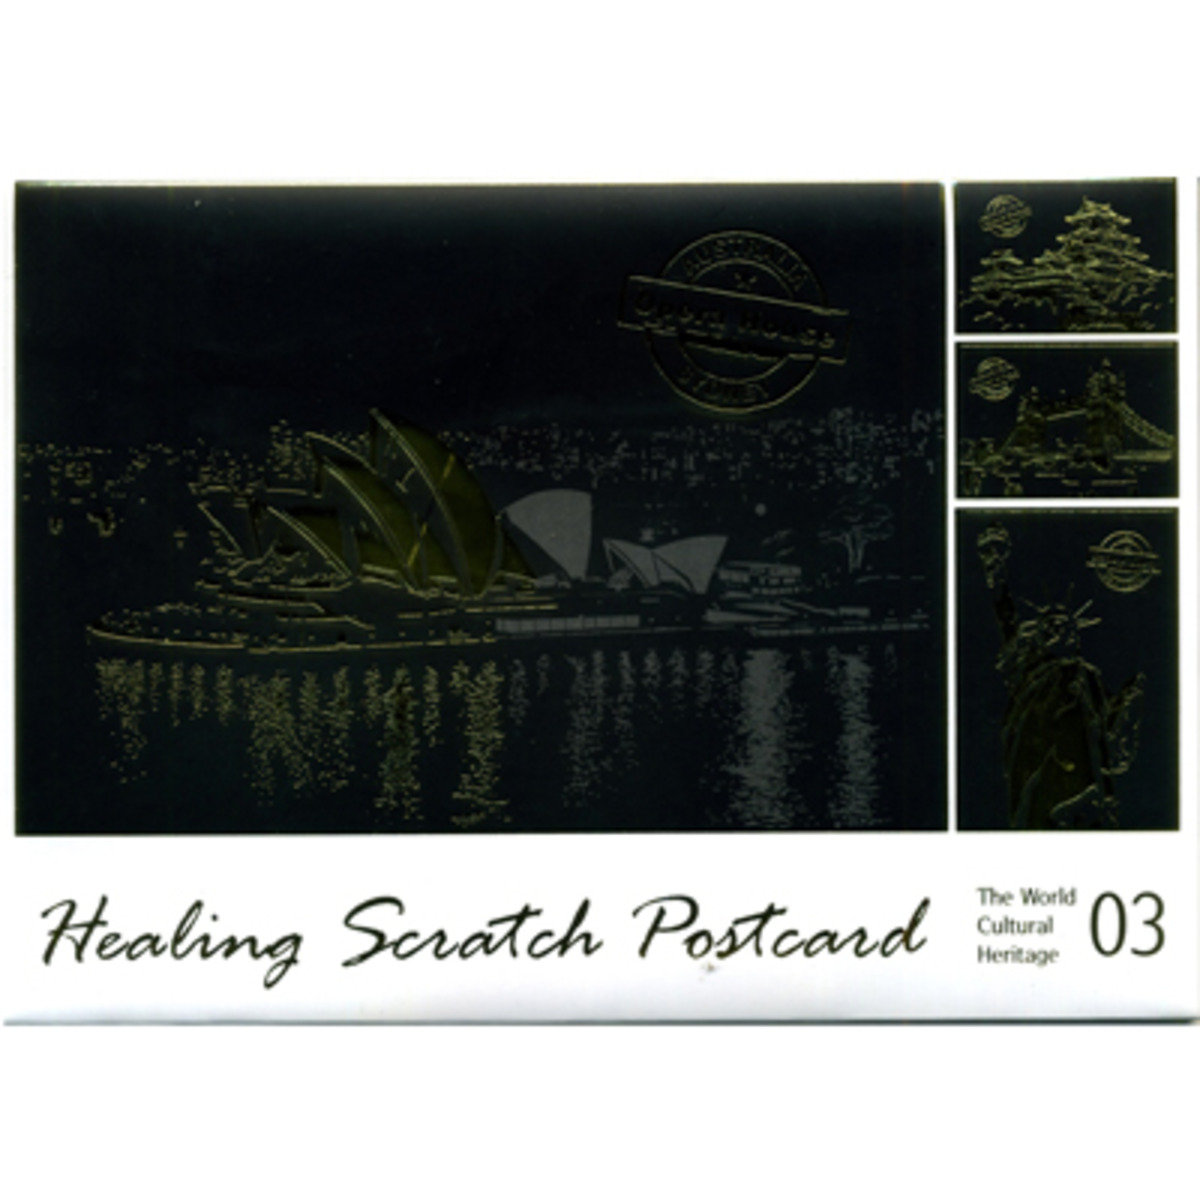 HEALING SCRATCH POSTCARD #3 THE WORLD CULTURAL HERITAGE